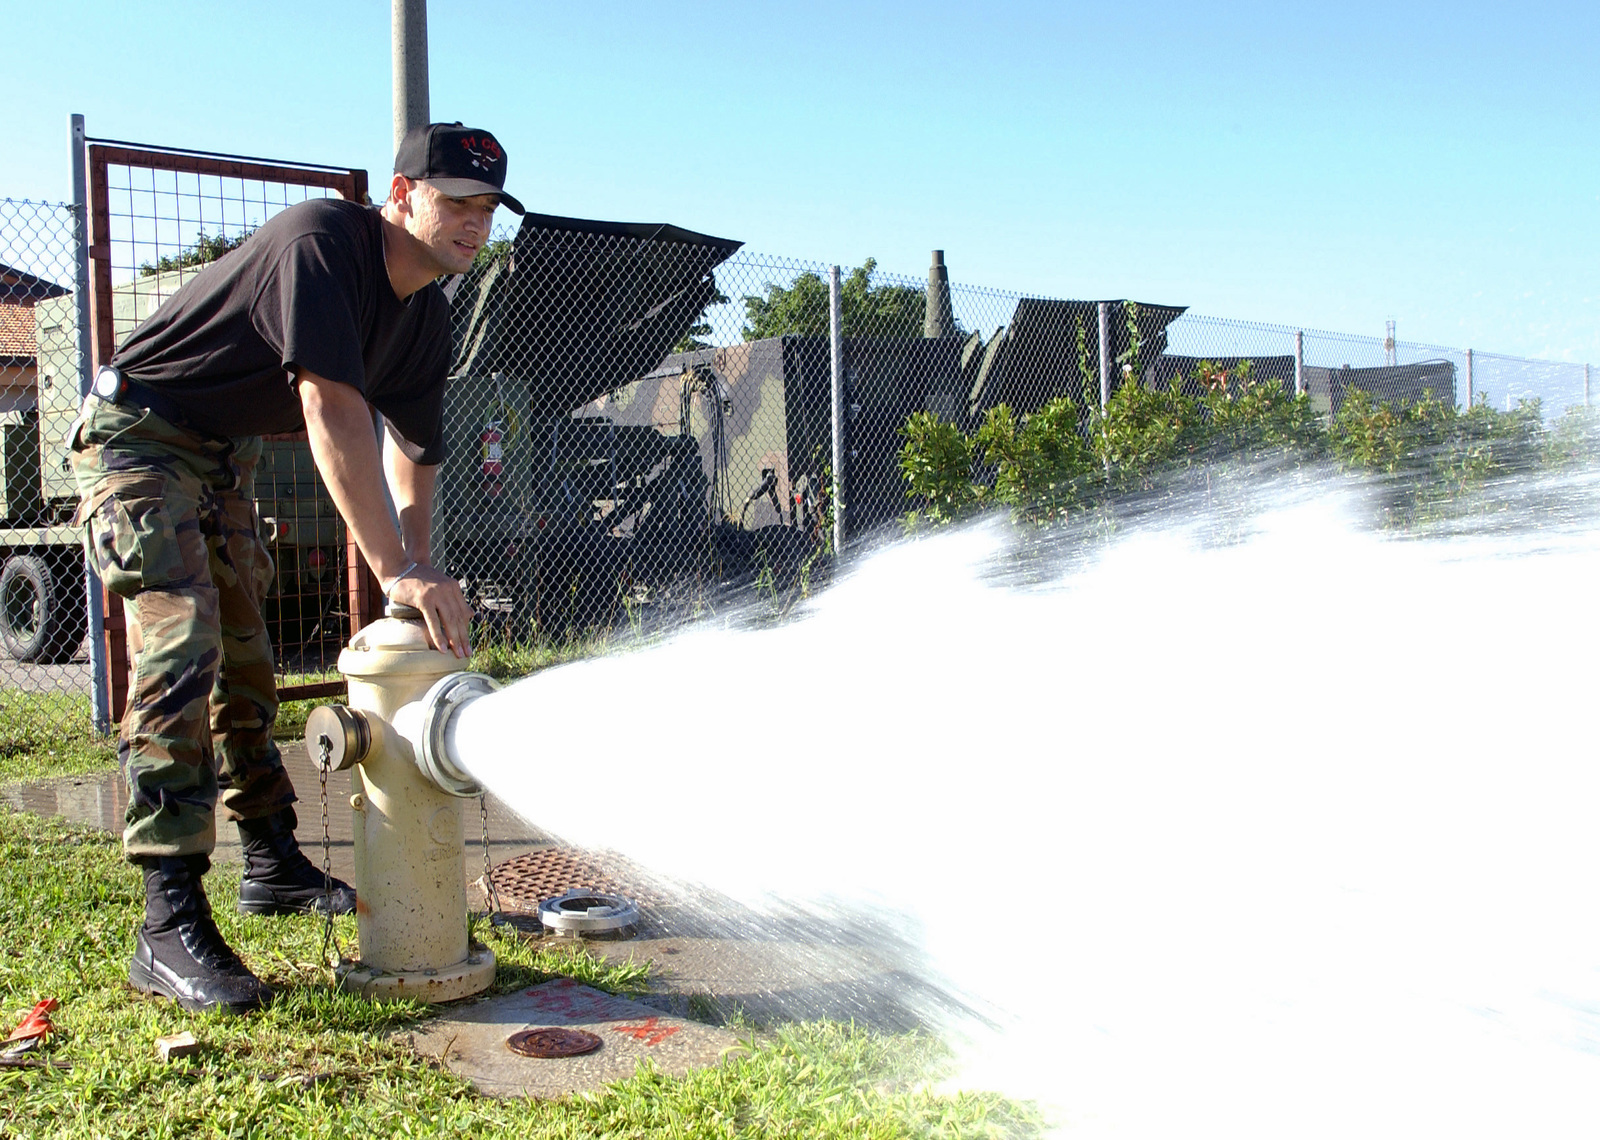 US Air Force (USAF) SENIOR AIRMAN (SRA) Anthony Constantine, 31st Civil Engineer Squadron (CES) releases water from a fire hydrant at Aviano Air Base (AB), Italy